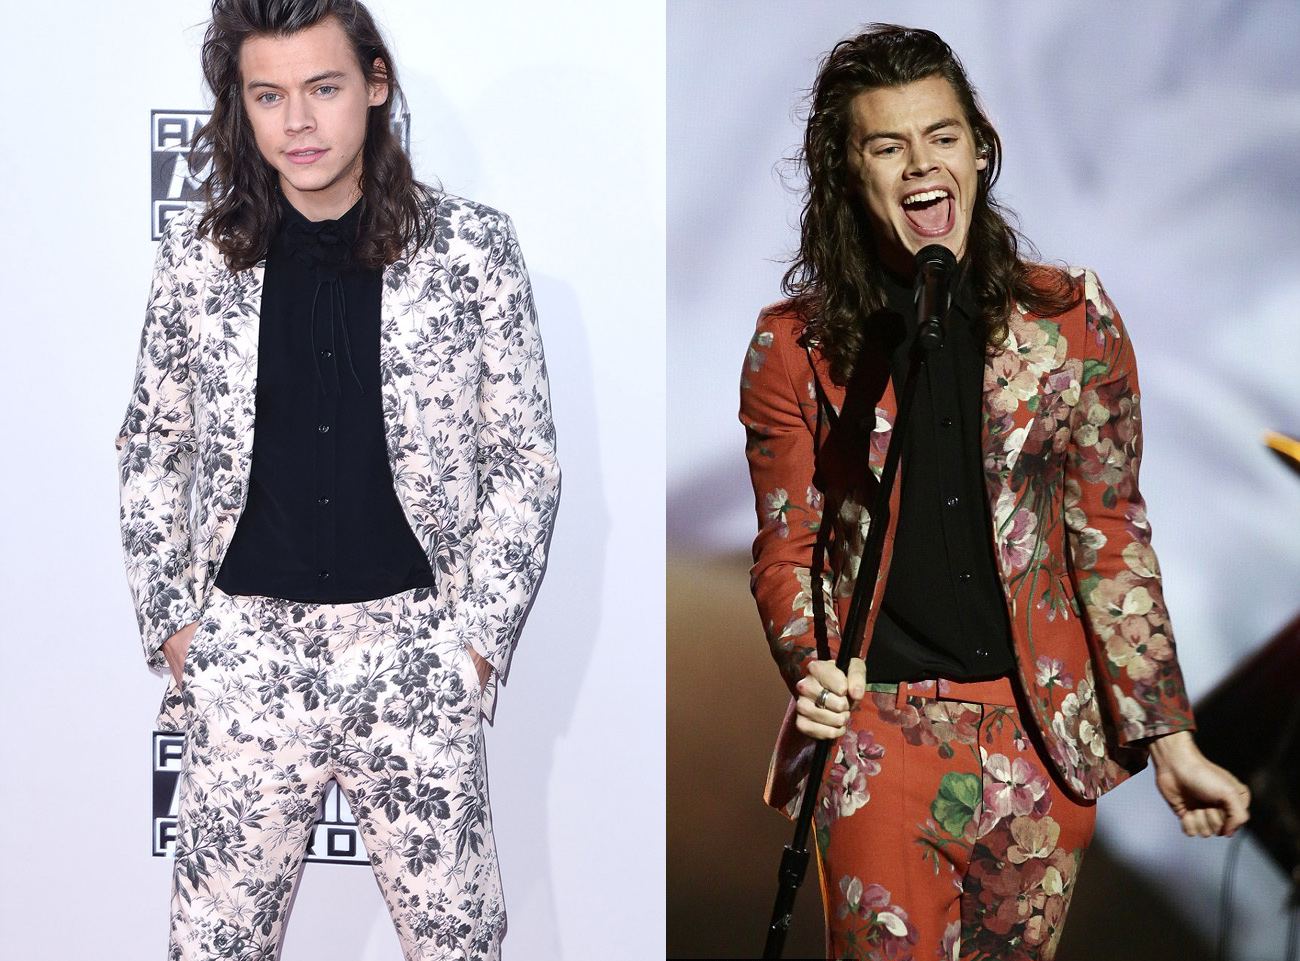 Harry Styles in a Floral Suit